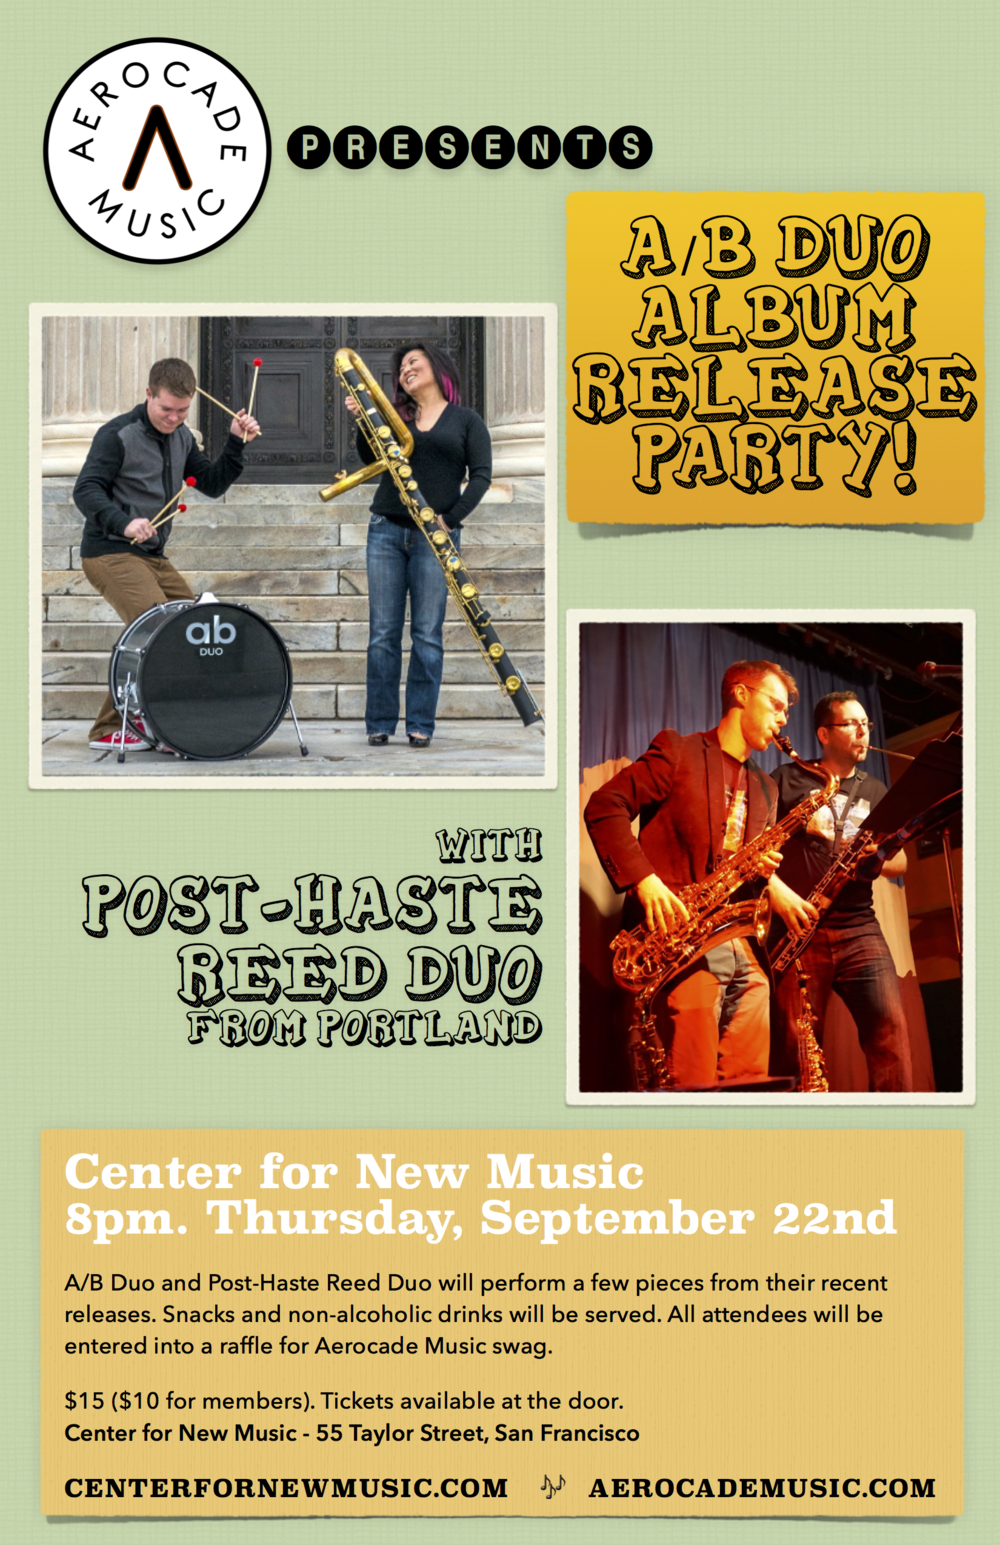 San Francisco, CA - Center for New Music - A/B Duo CD Release show